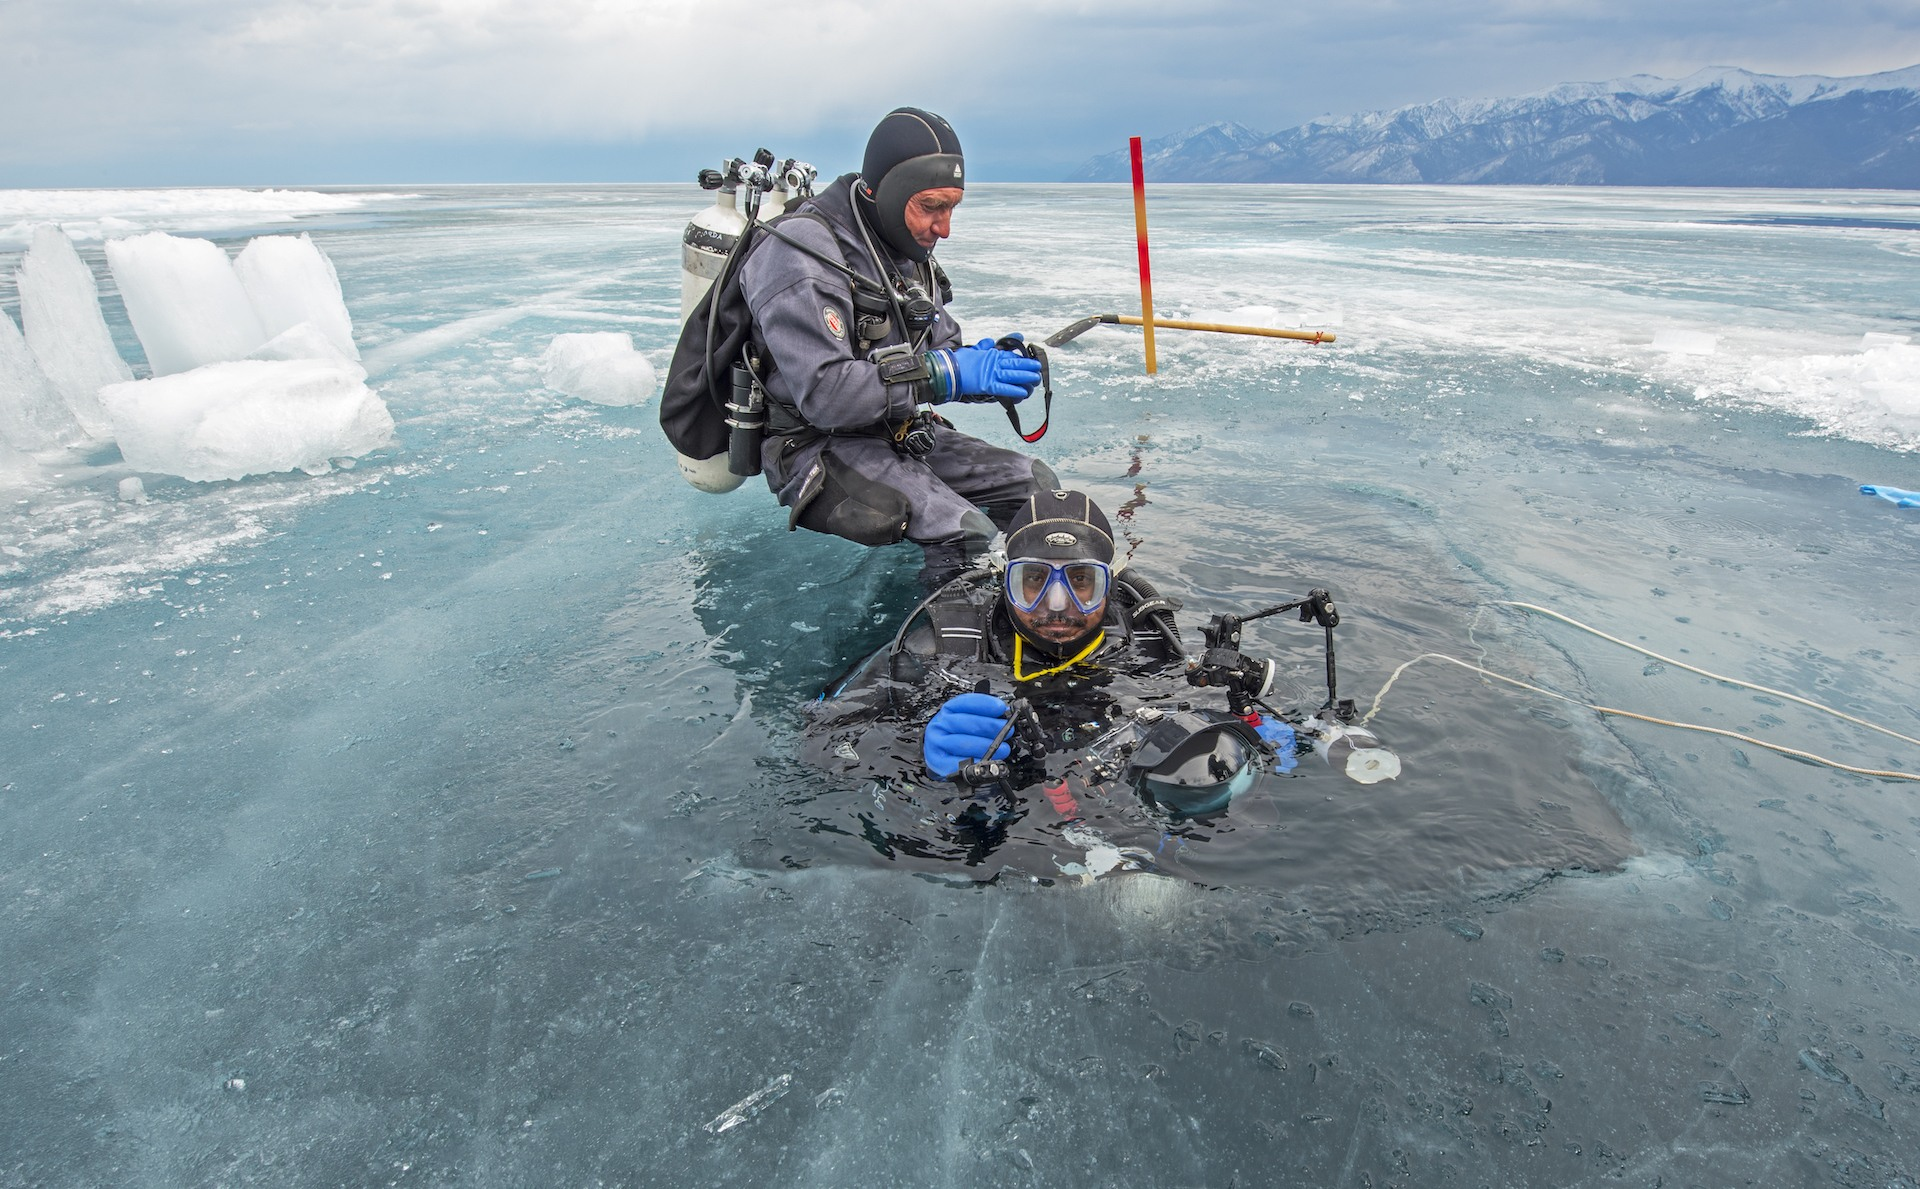 FROM THE FIELD: To photograph the pup underwater, we carved a hole about twenty feet from the nest using a chainsaw (the ice was over a metre thick!). This allowed me to enter the water along with the nerpa seal, without disrupting the nest. Underwater, me and my co-diver had a tether rope so we could find our way back to the ice hole. In many ways, we were far less experienced than the month-old pup we were shadowing.